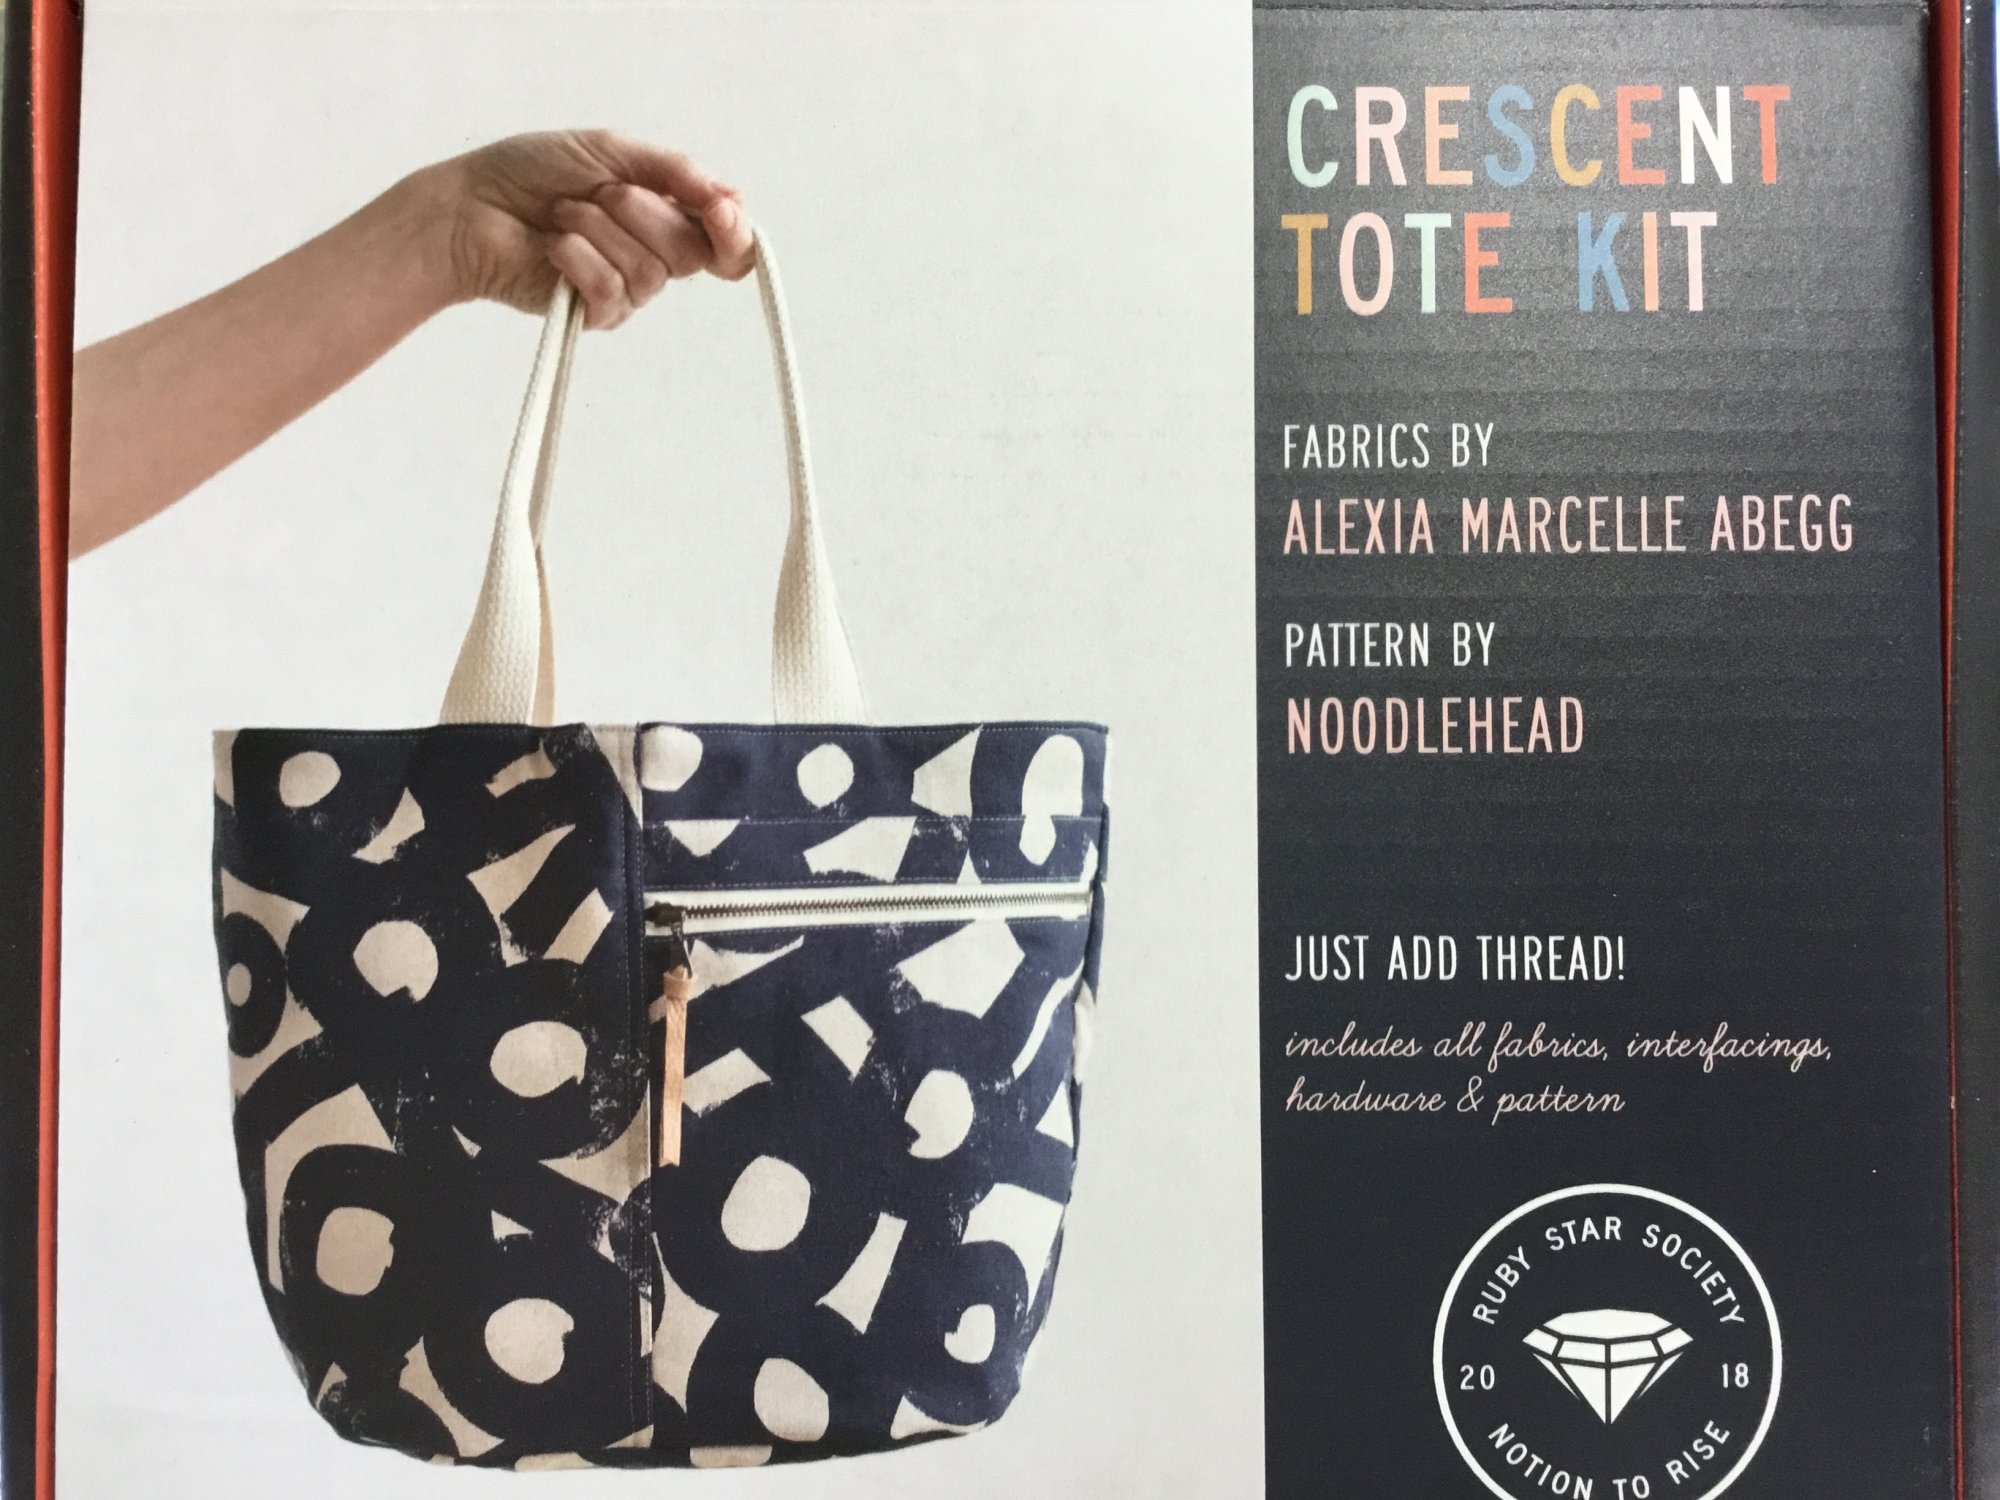 CRESCENT TOTE KIT  by RUBY STAR SOCIETY